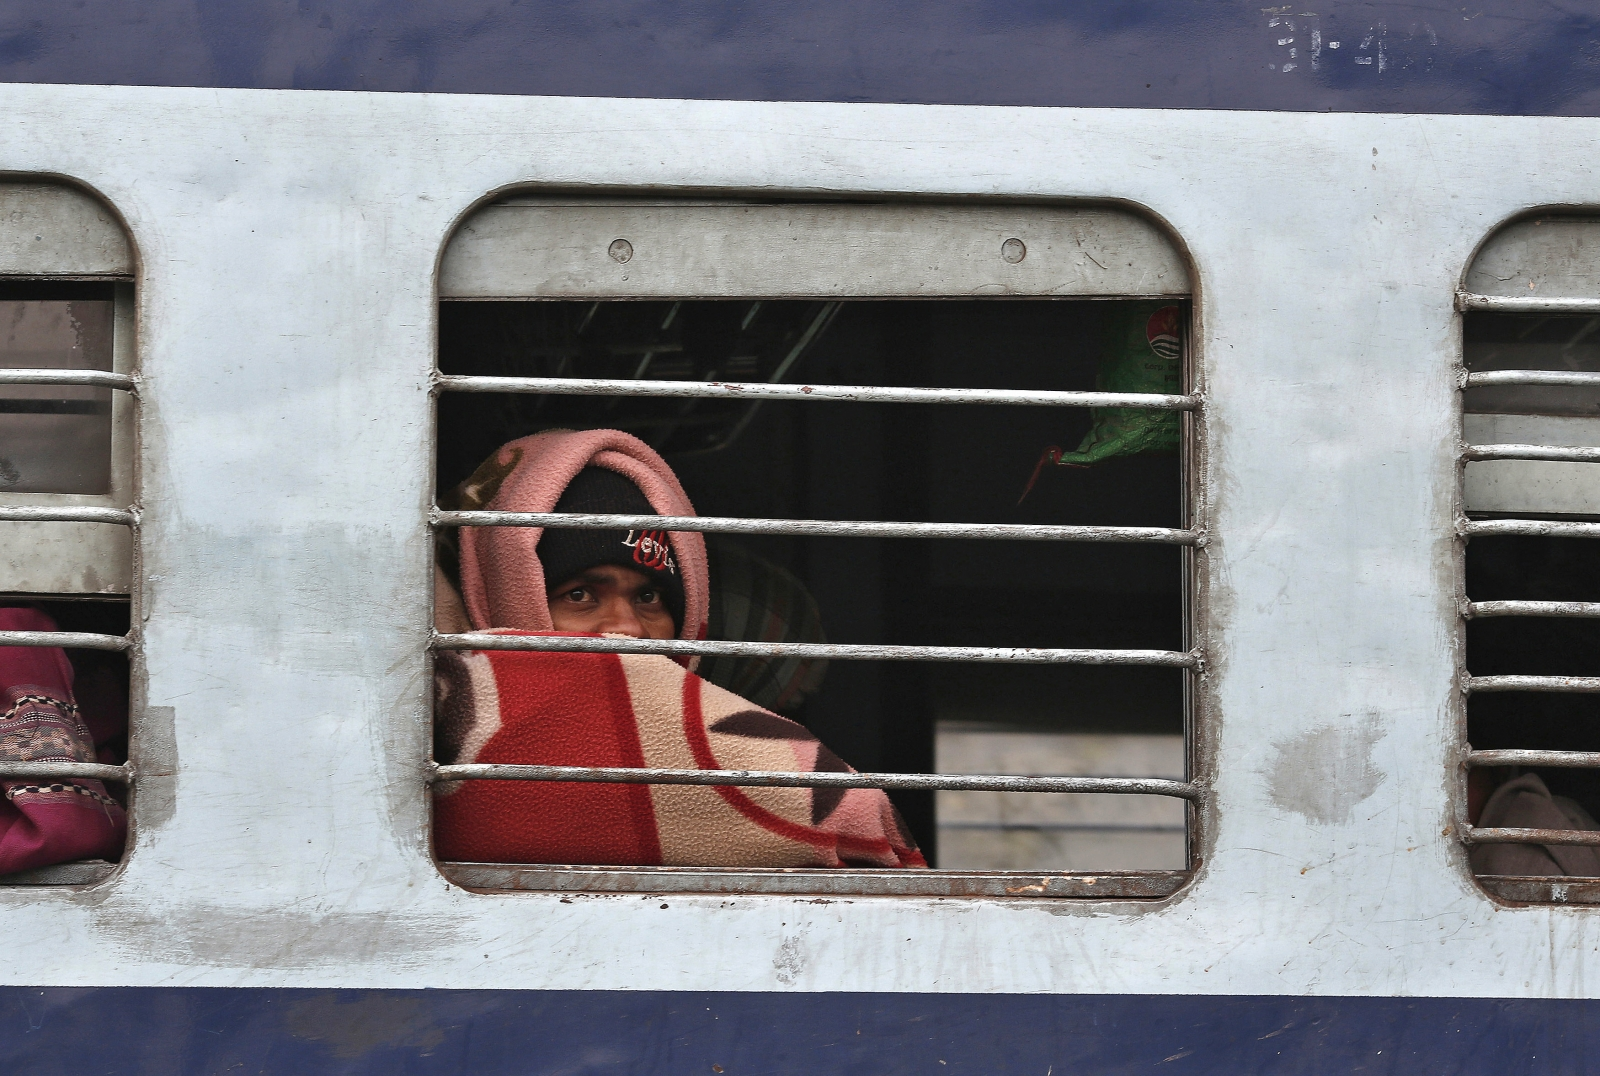 South India train accident